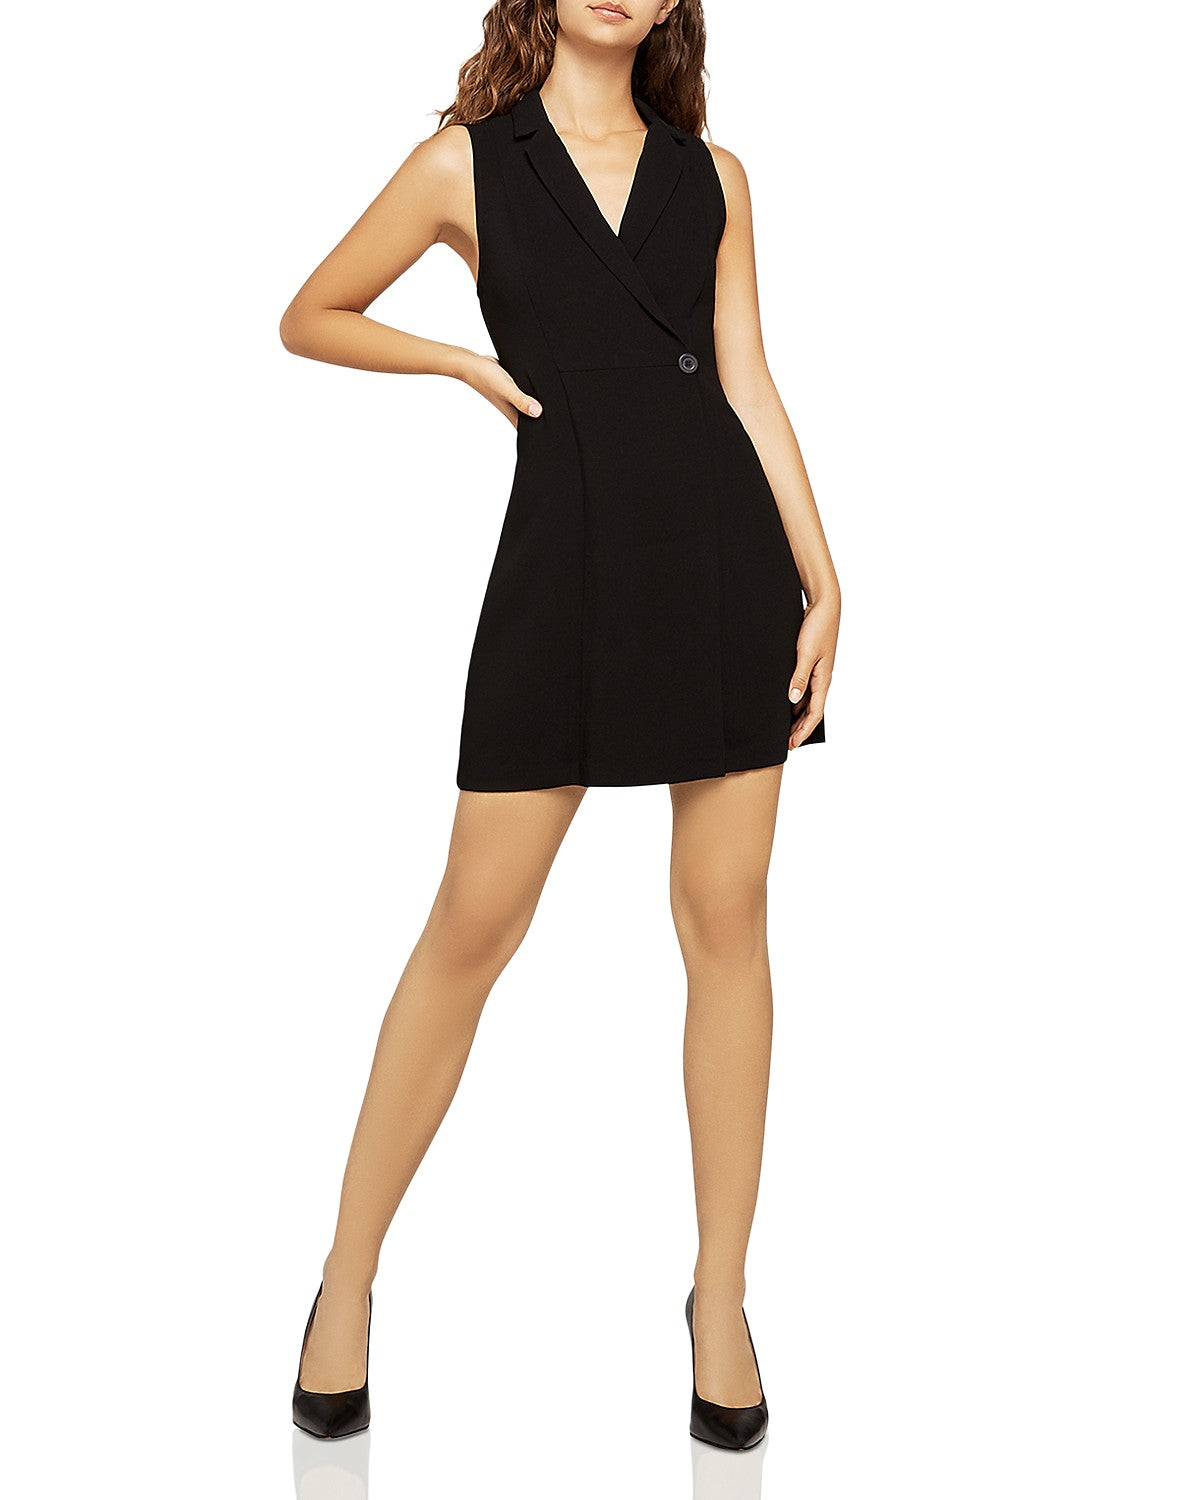 BCBGeneration Sleeveless Blazer Cocktail Dress GEF66P08